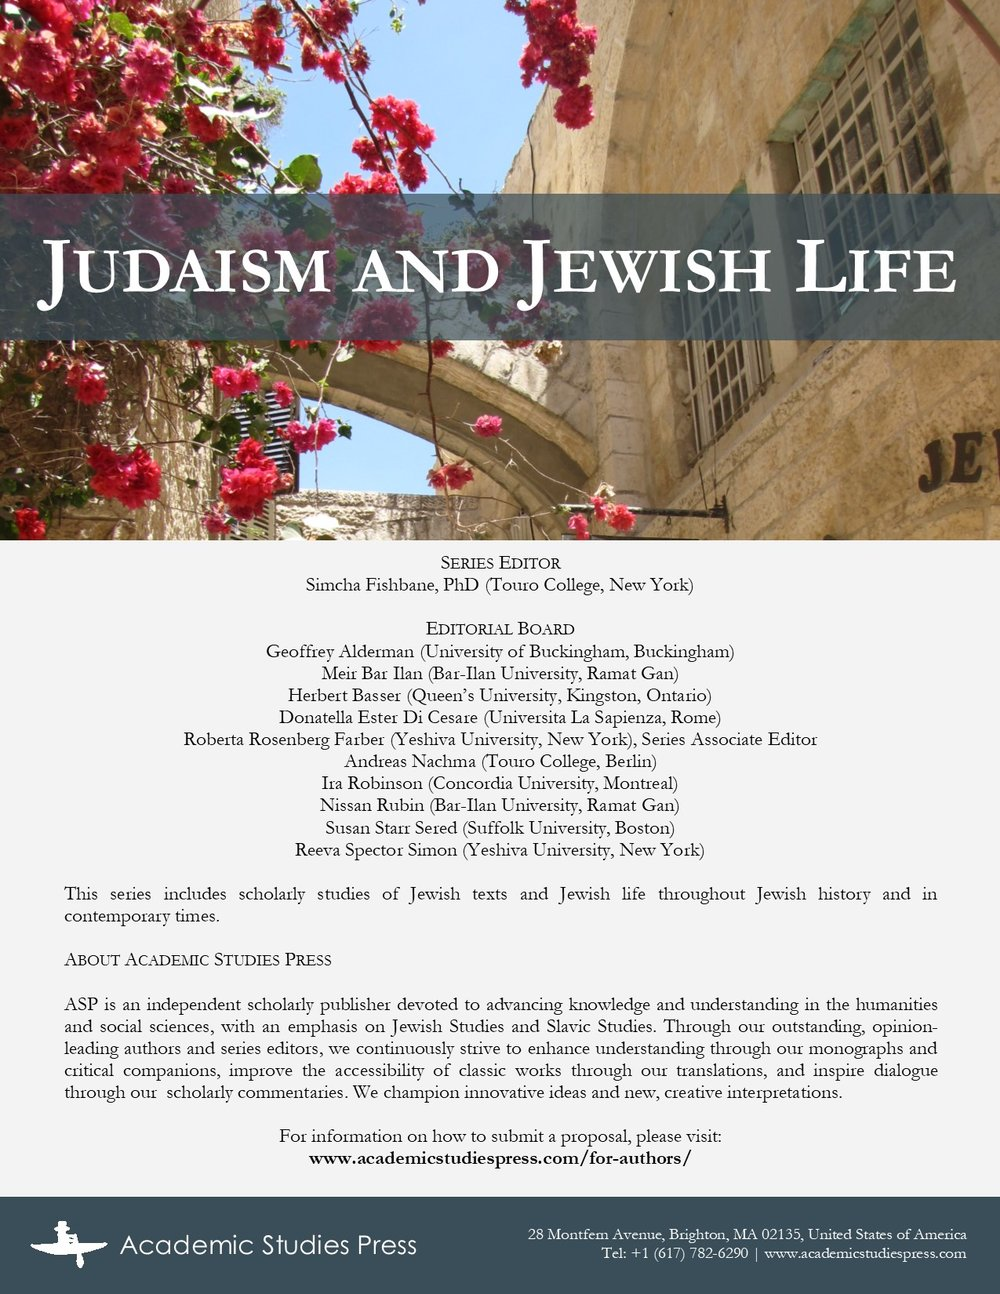 Judaism and Jewish Life Flyer.jpg